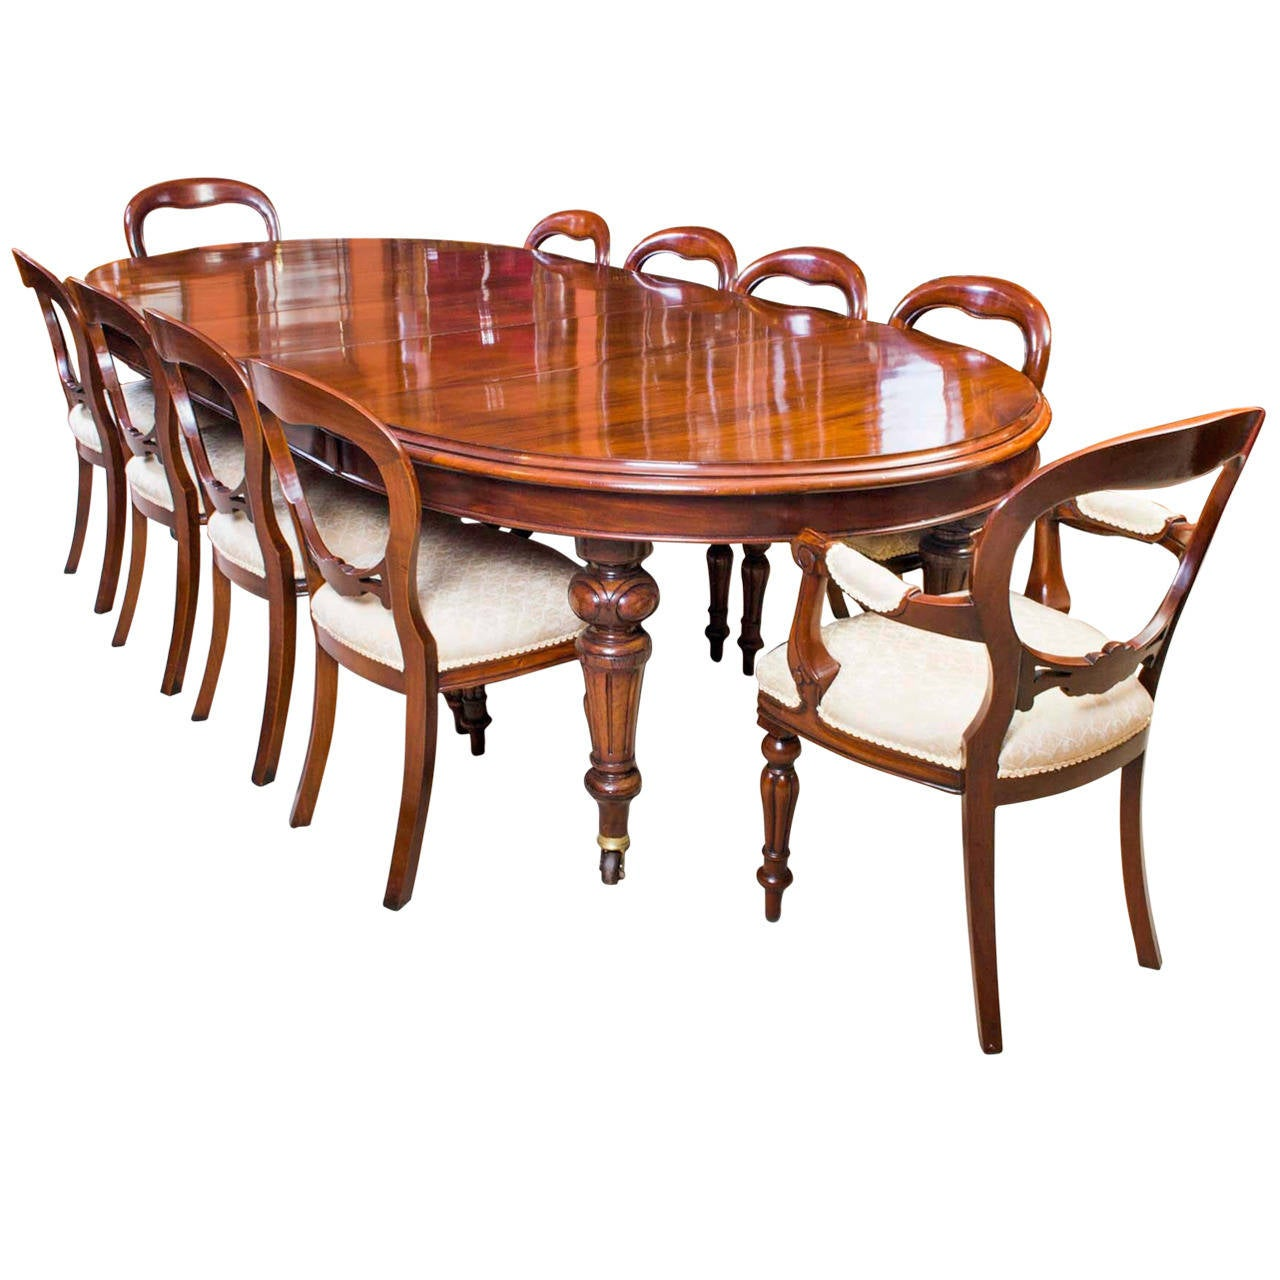 Victorian Dining Room Table: Antique Victorian Dining Table And Ten Chairs, Circa 1870